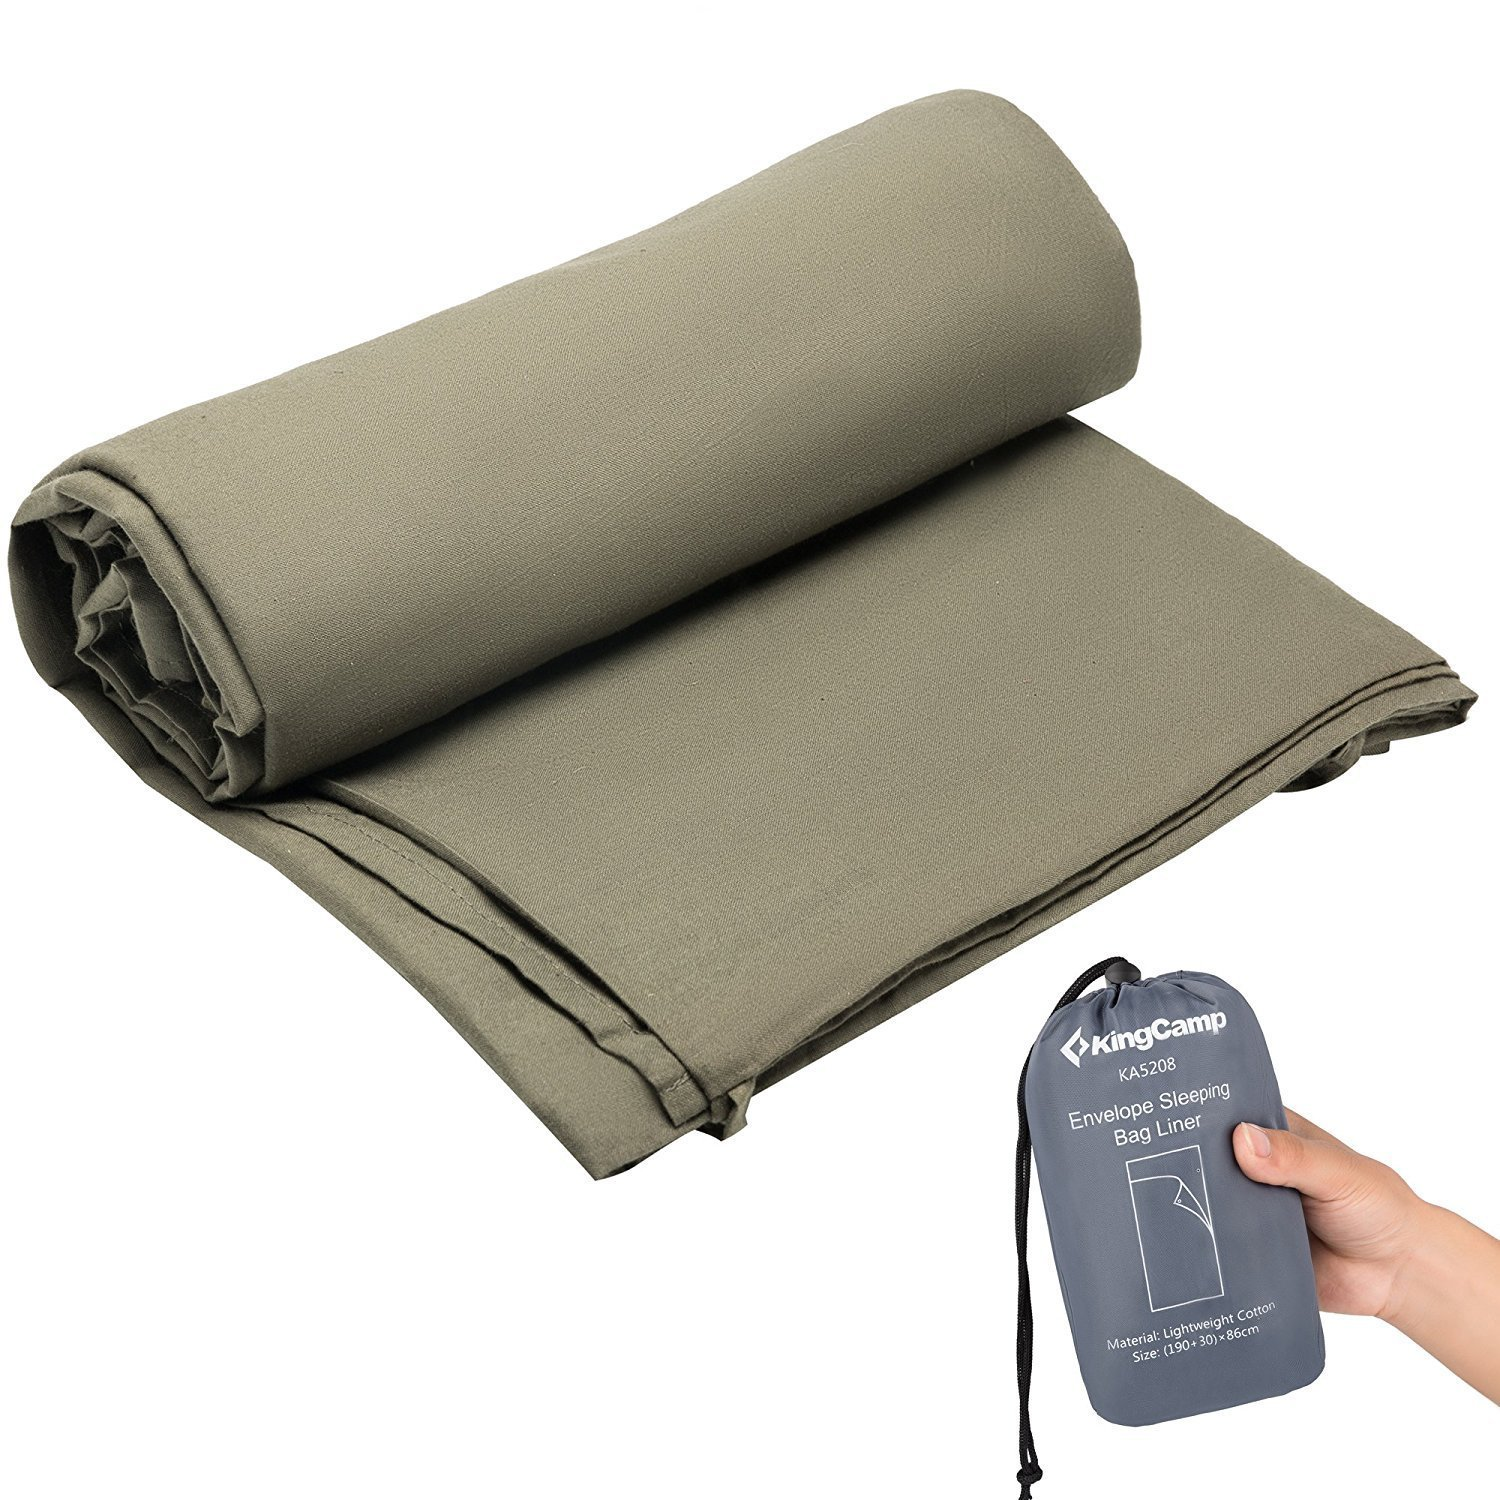 KingCamp Compact Portable Lightweight Soft Machine Washable High-Density Cotton Envelope Sleeping Bag Liner for Hotel and Camping, Travel Sheet and Sleeping Sack (Green)